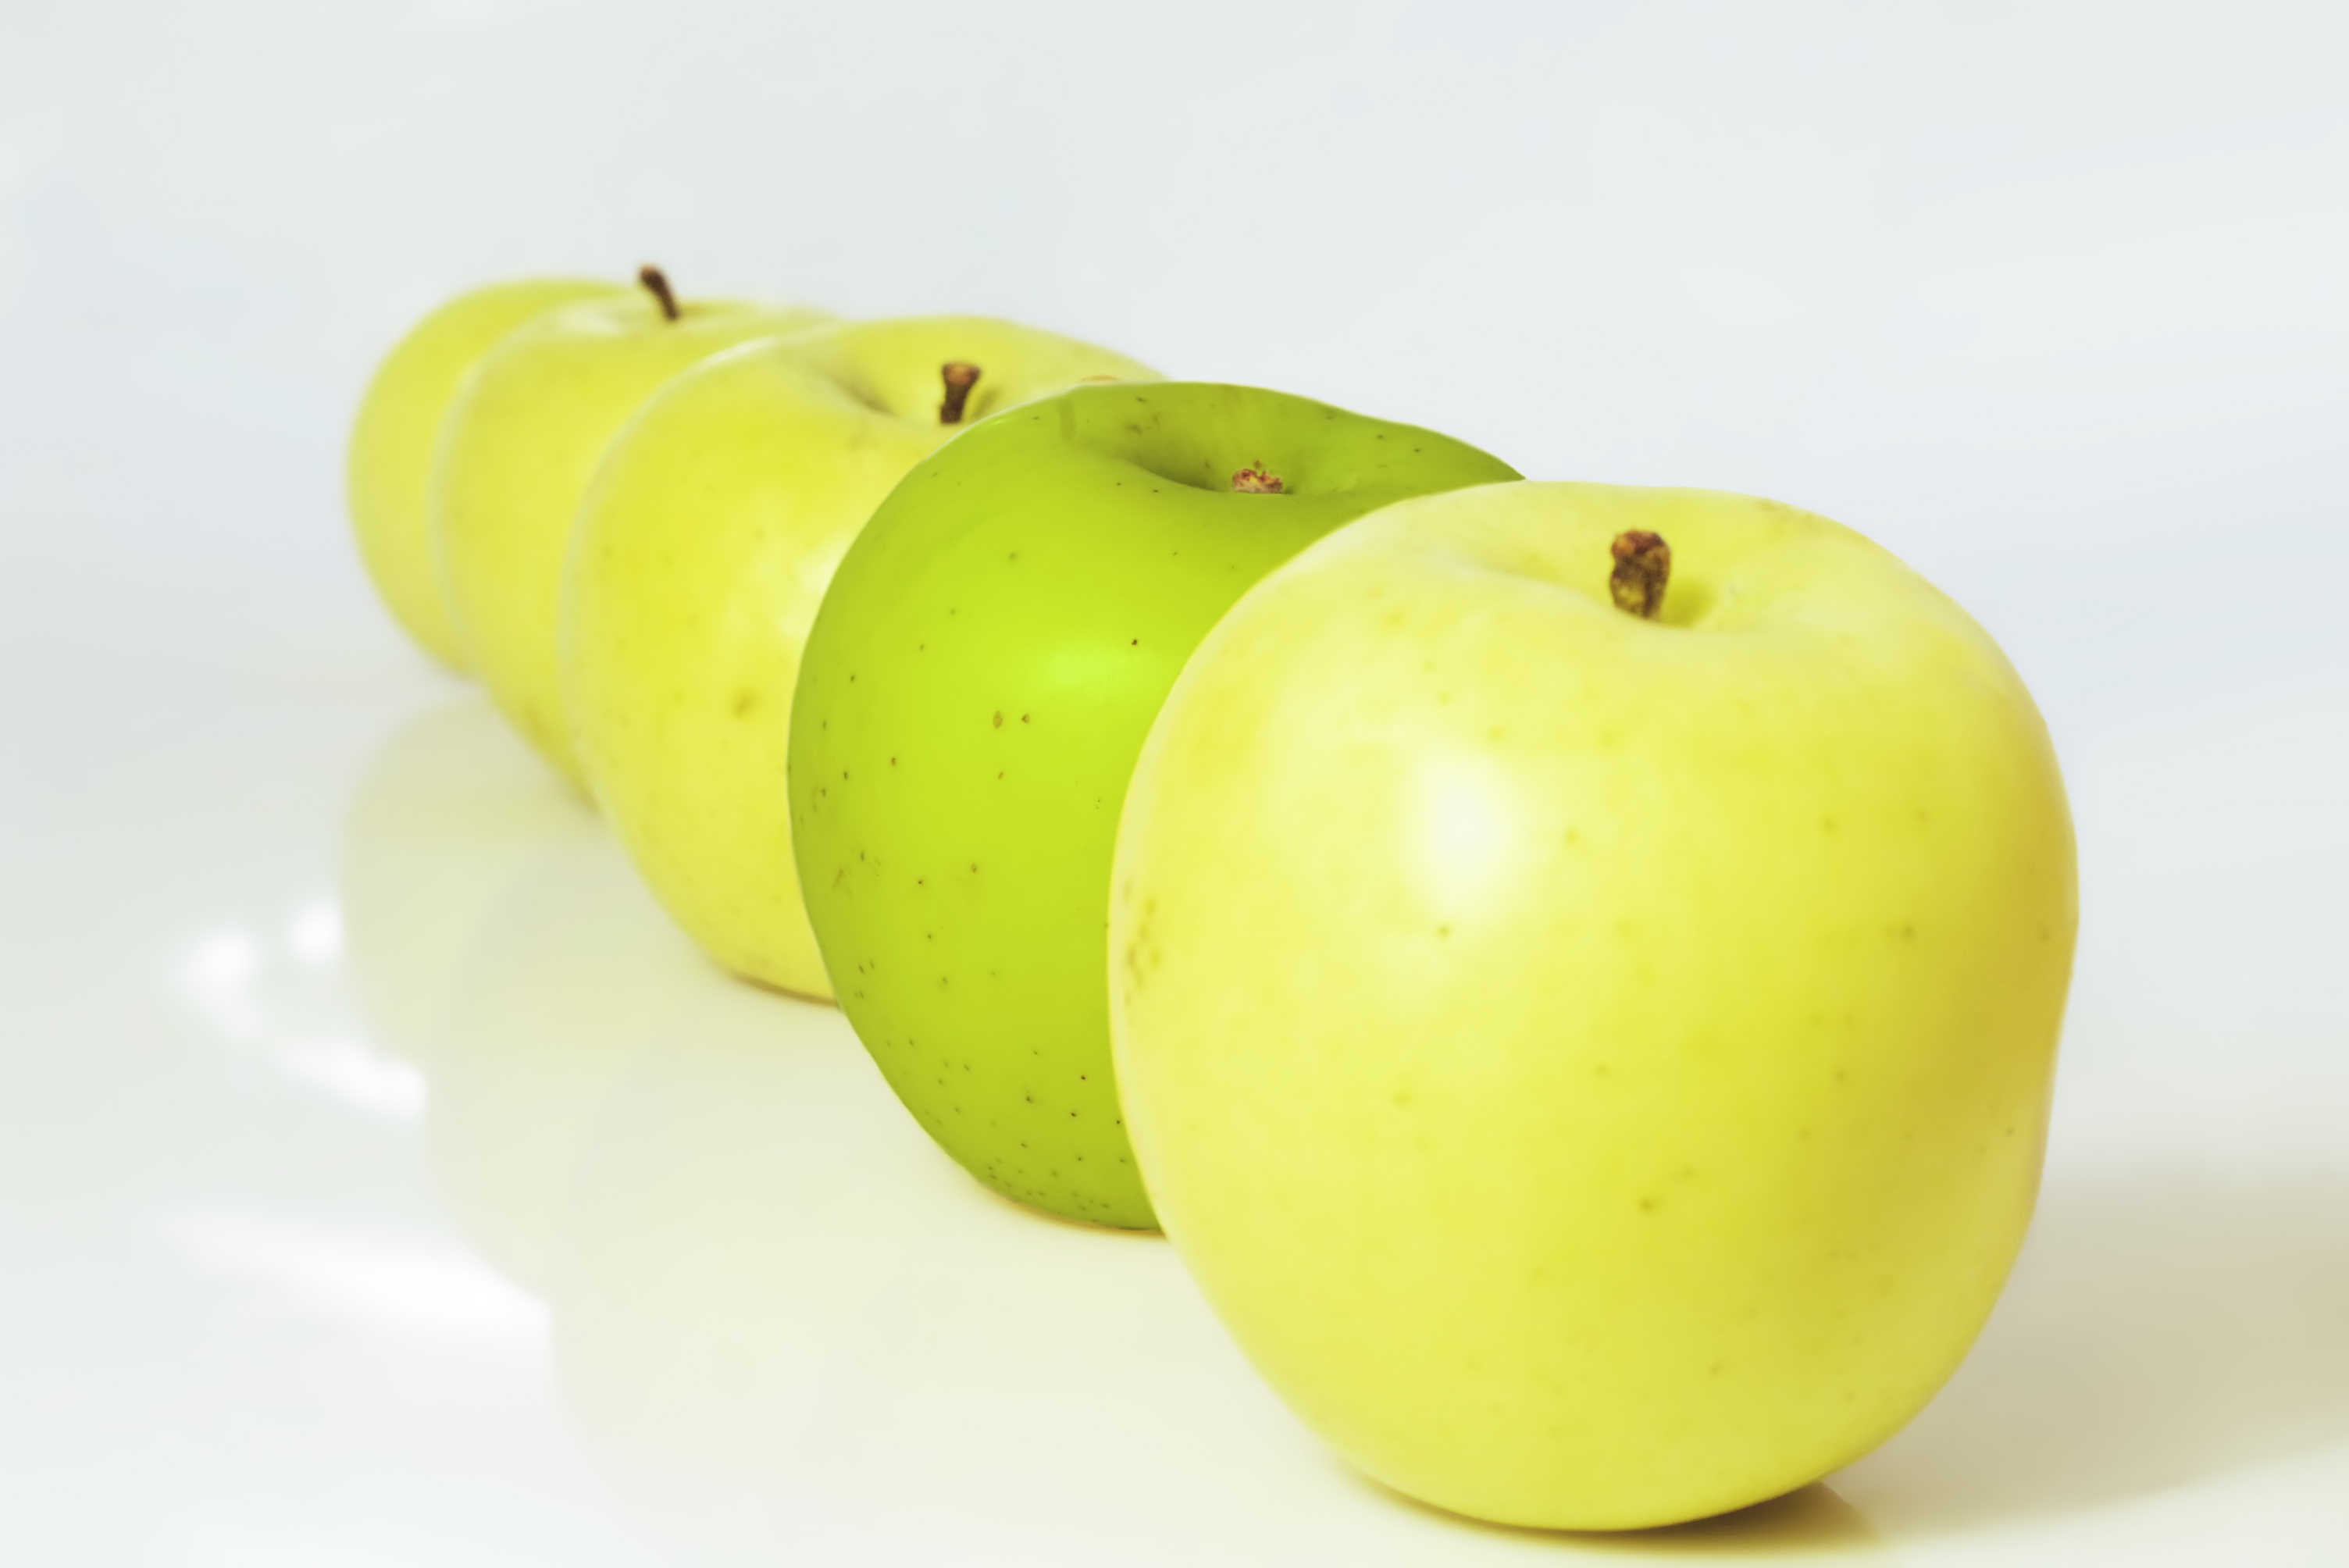 http://www.dreamstime.com/stock-photo-yellow-apples-and-a-green-rimagefree3130384-resi3857824